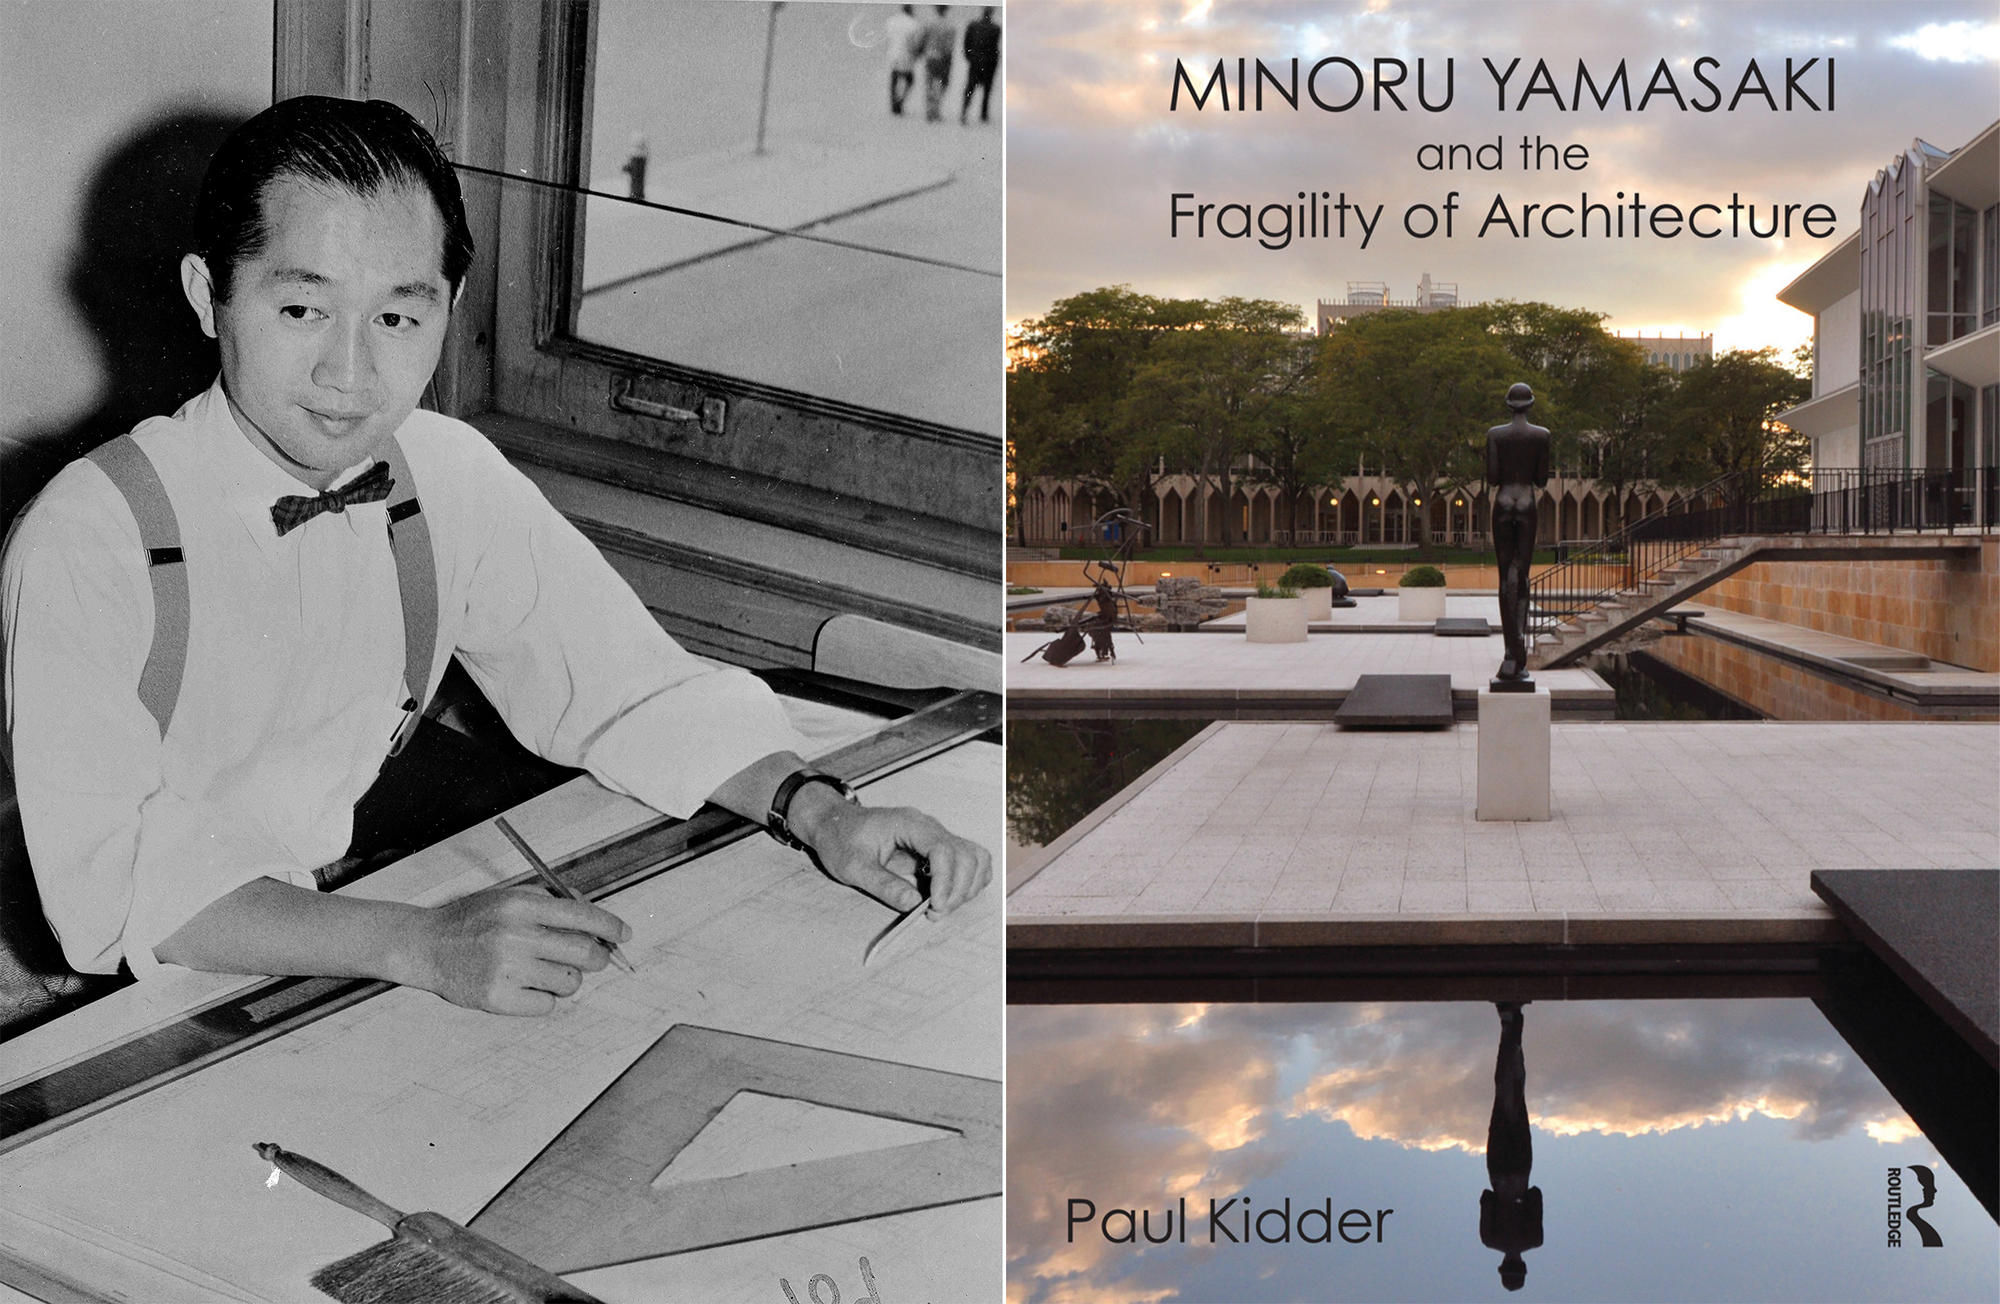 crosscut.com: Remembering the Seattle architect who built the World Trade Center